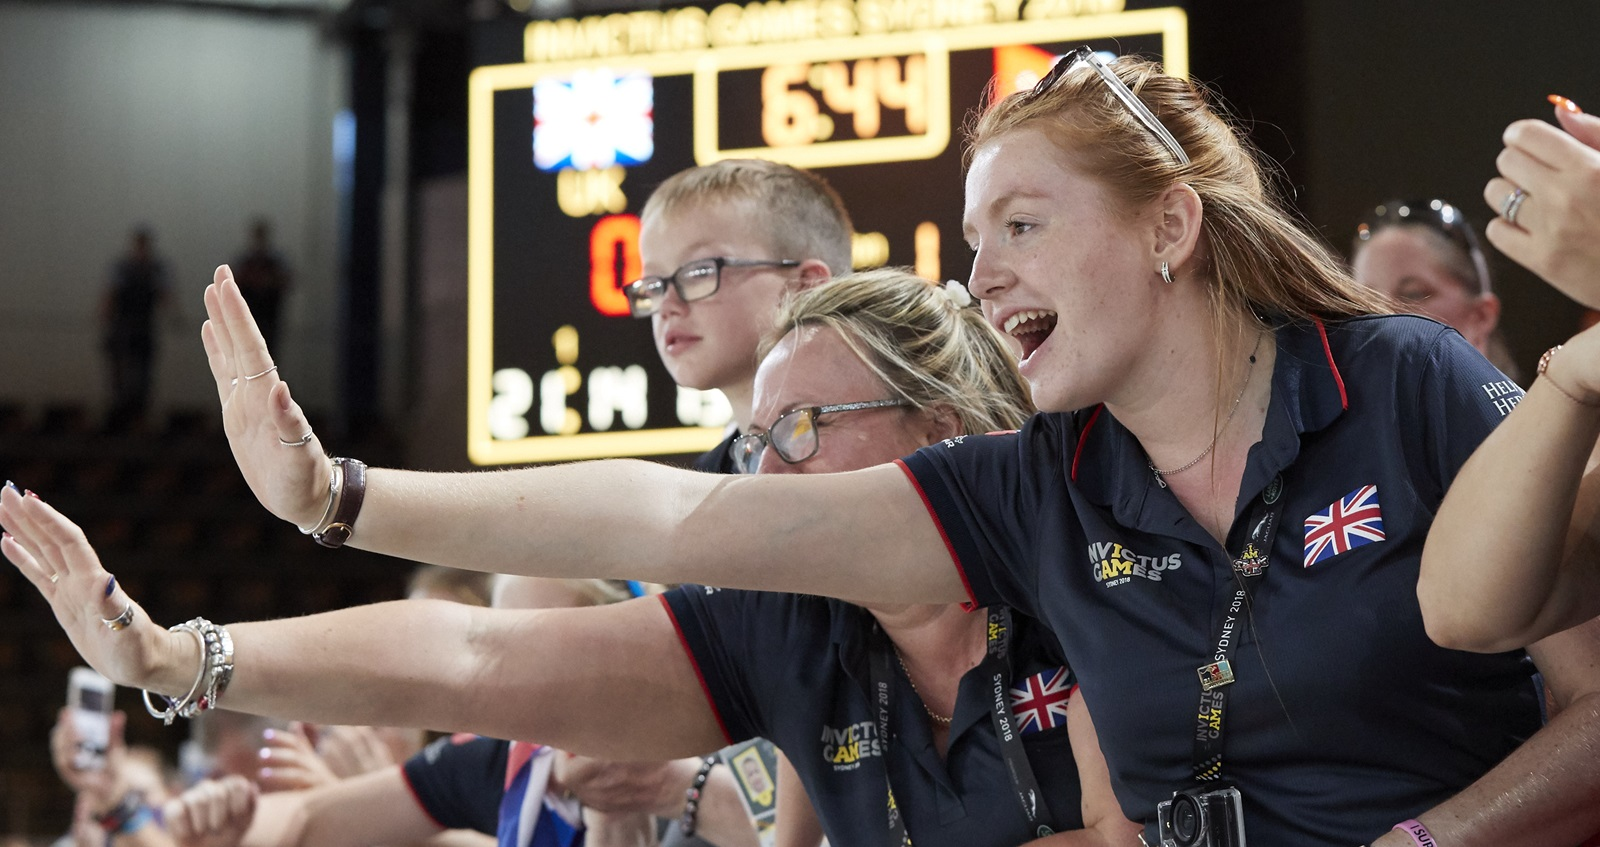 White family at Invictus Games